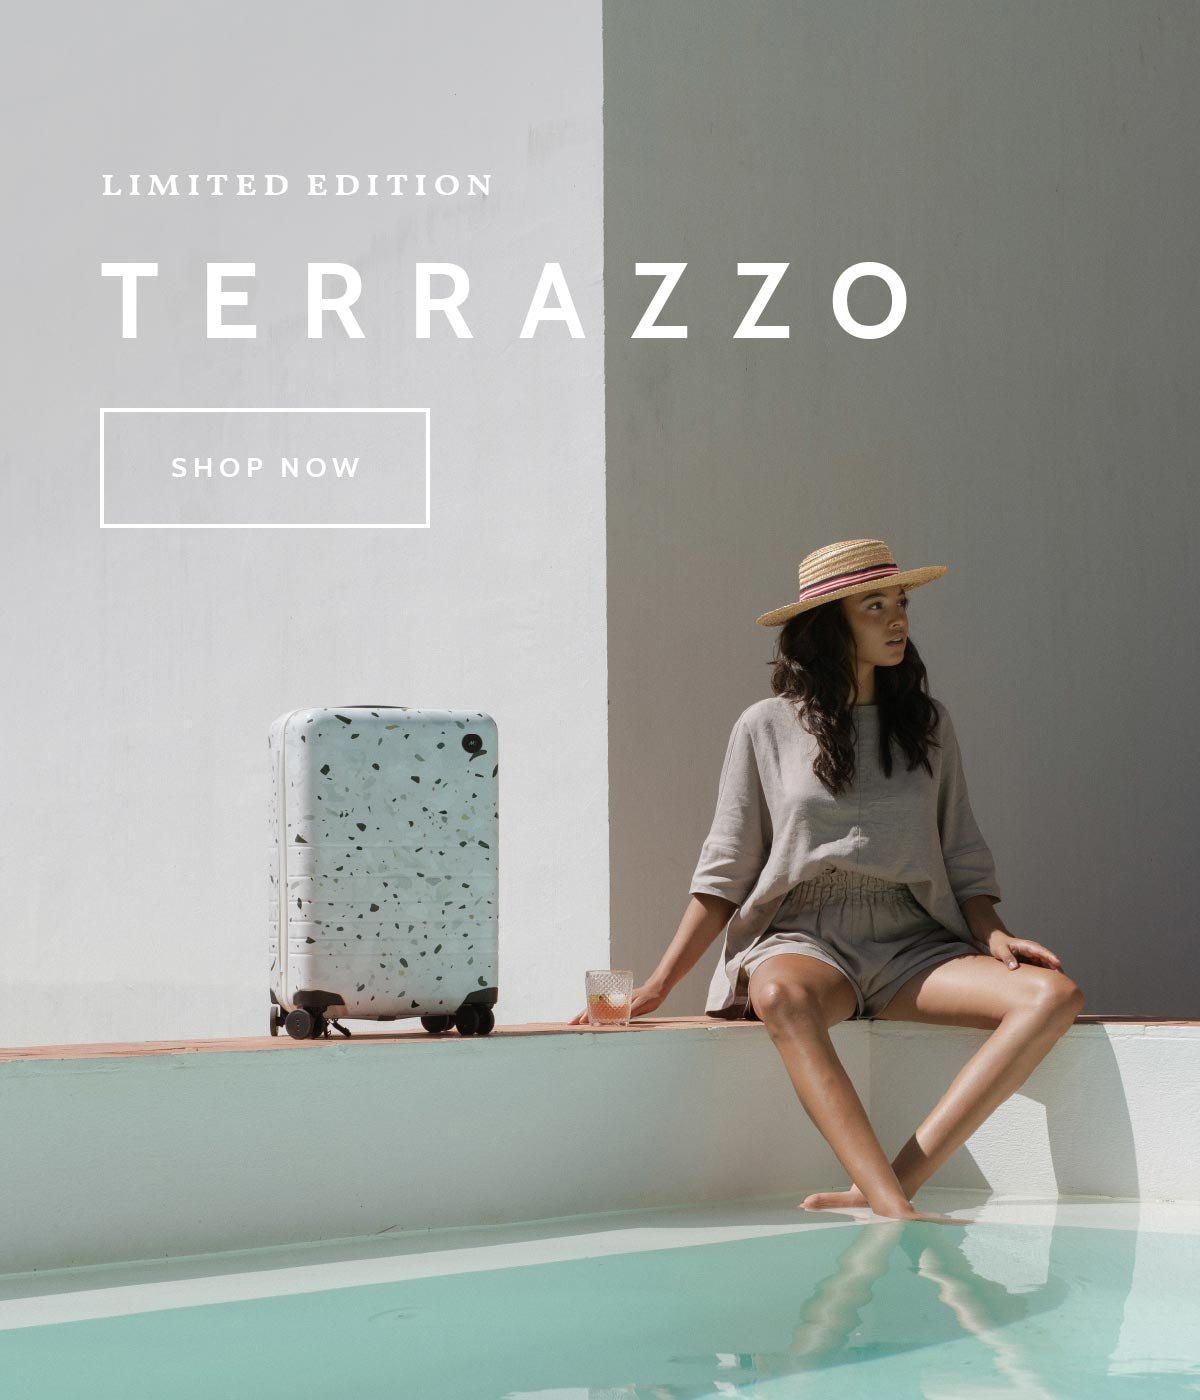 Limited Edition: Terrazzo. Shop now.